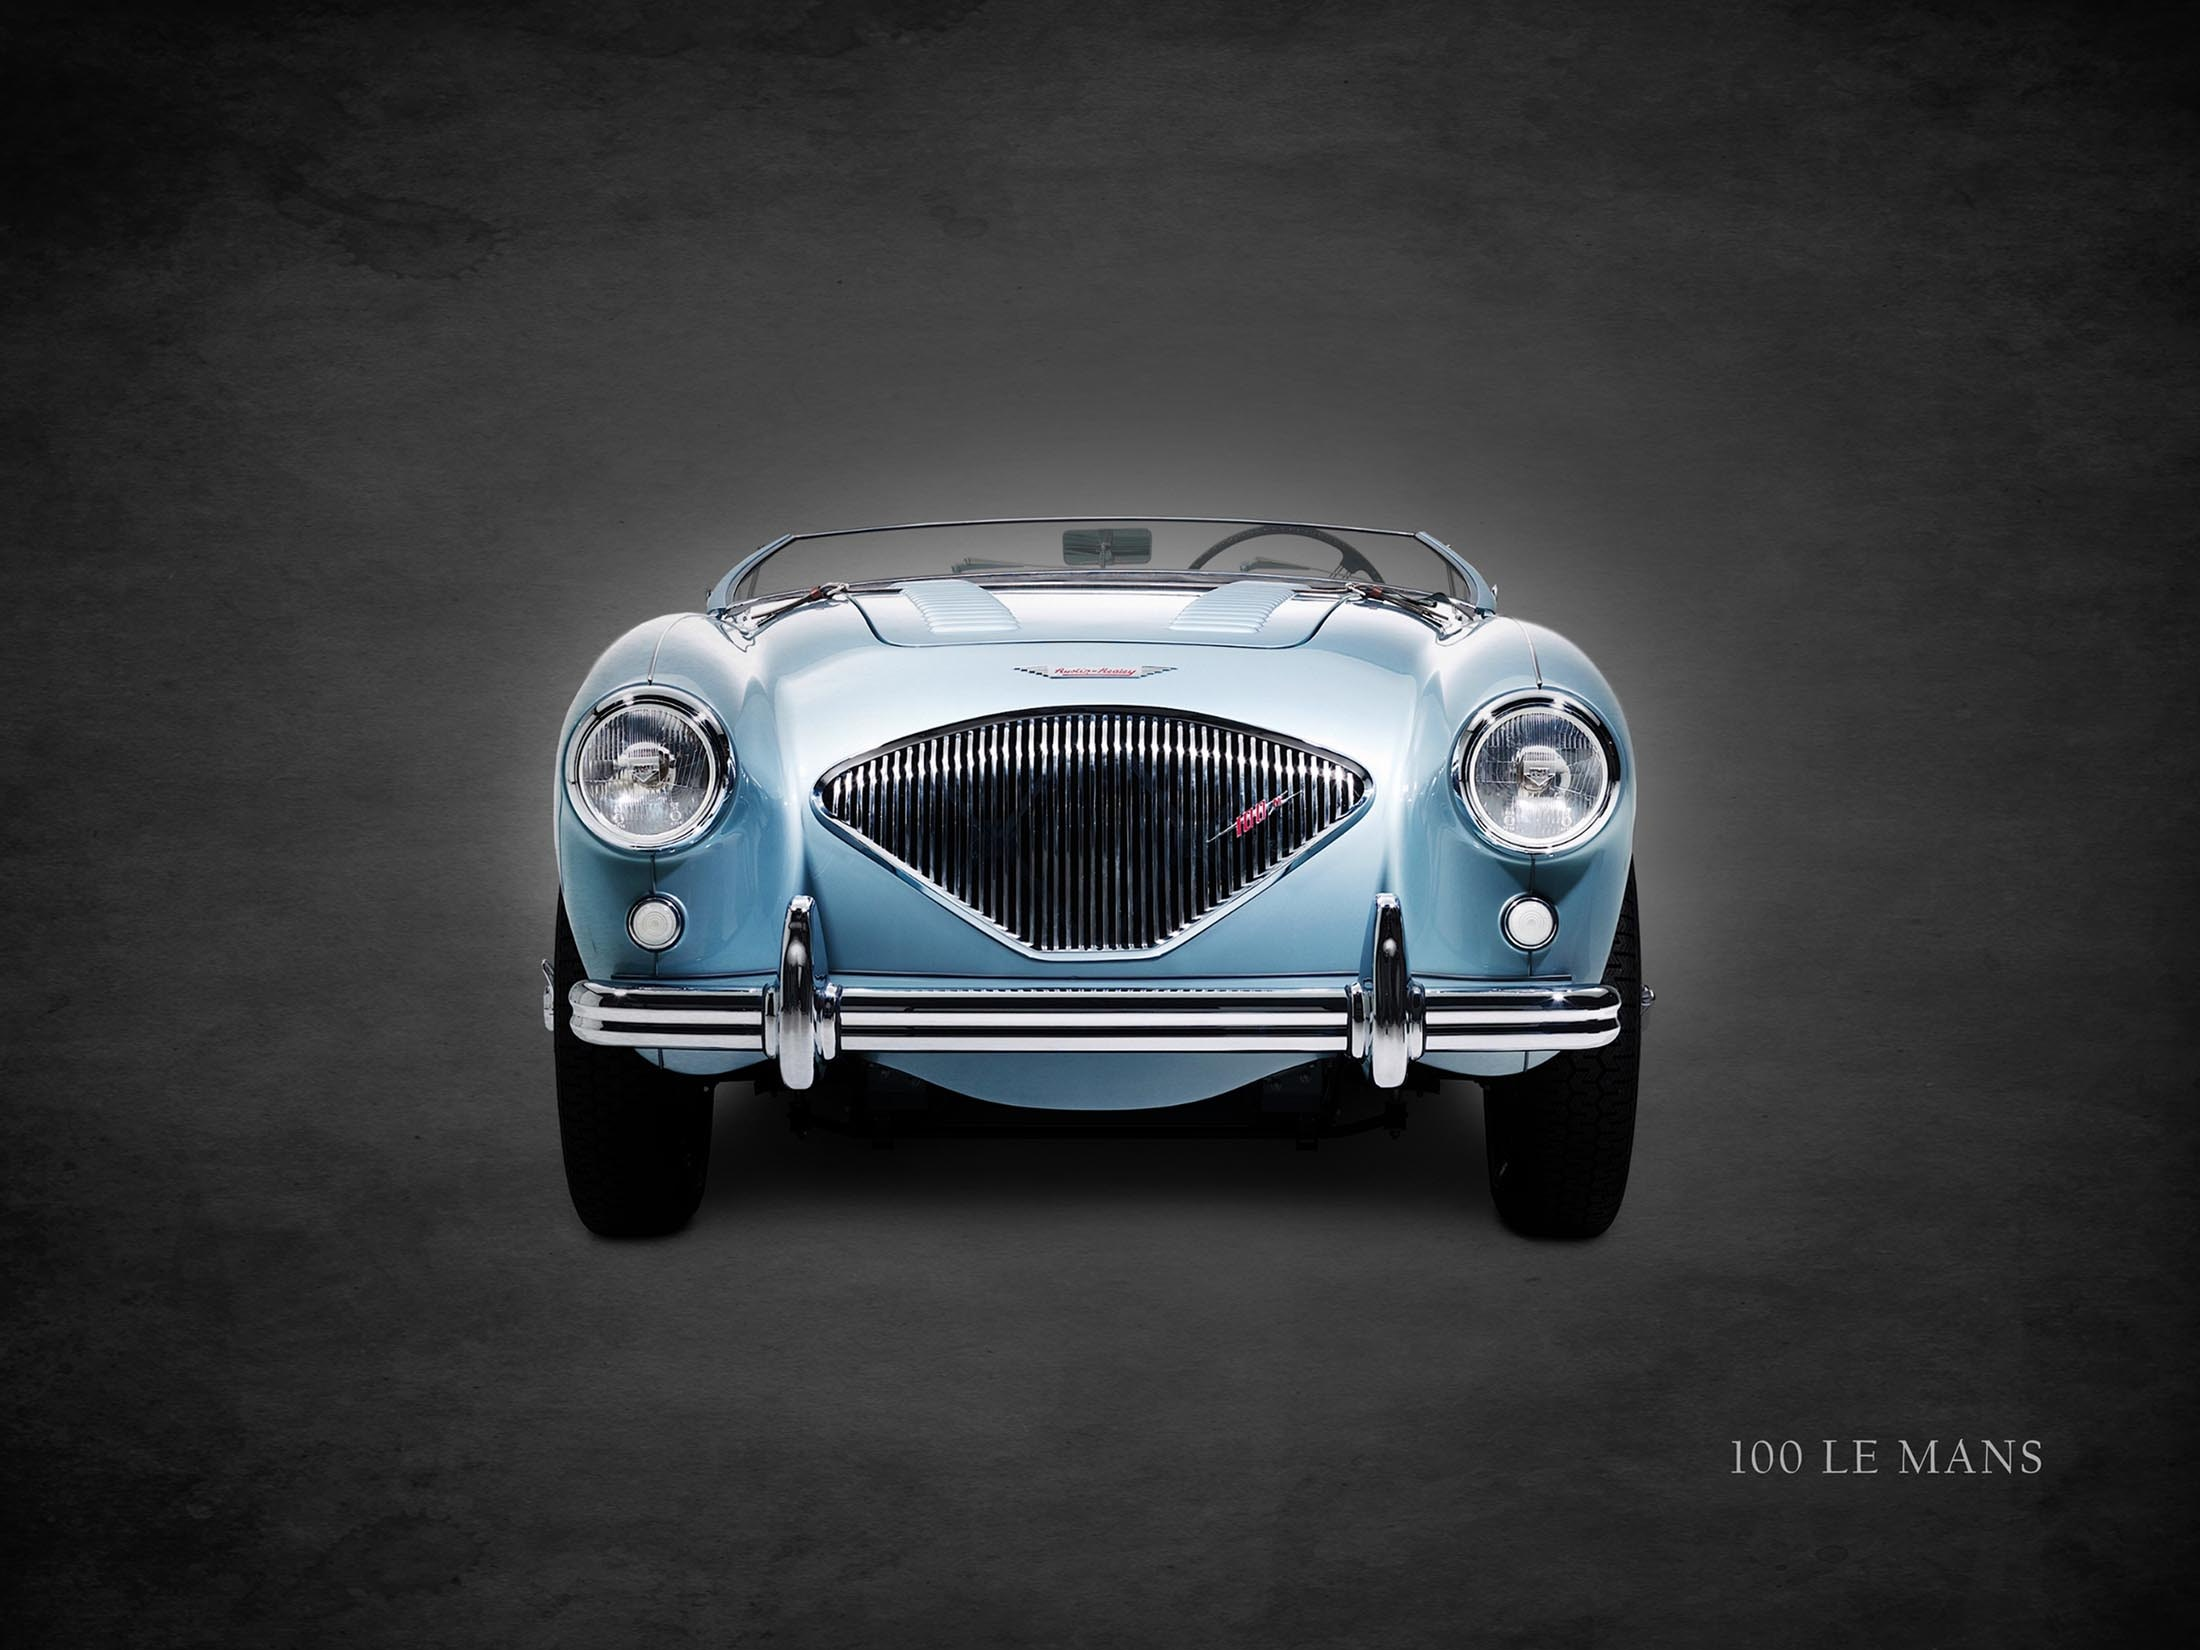 AUSTIN-HEALEY 100 LEMANS 1956